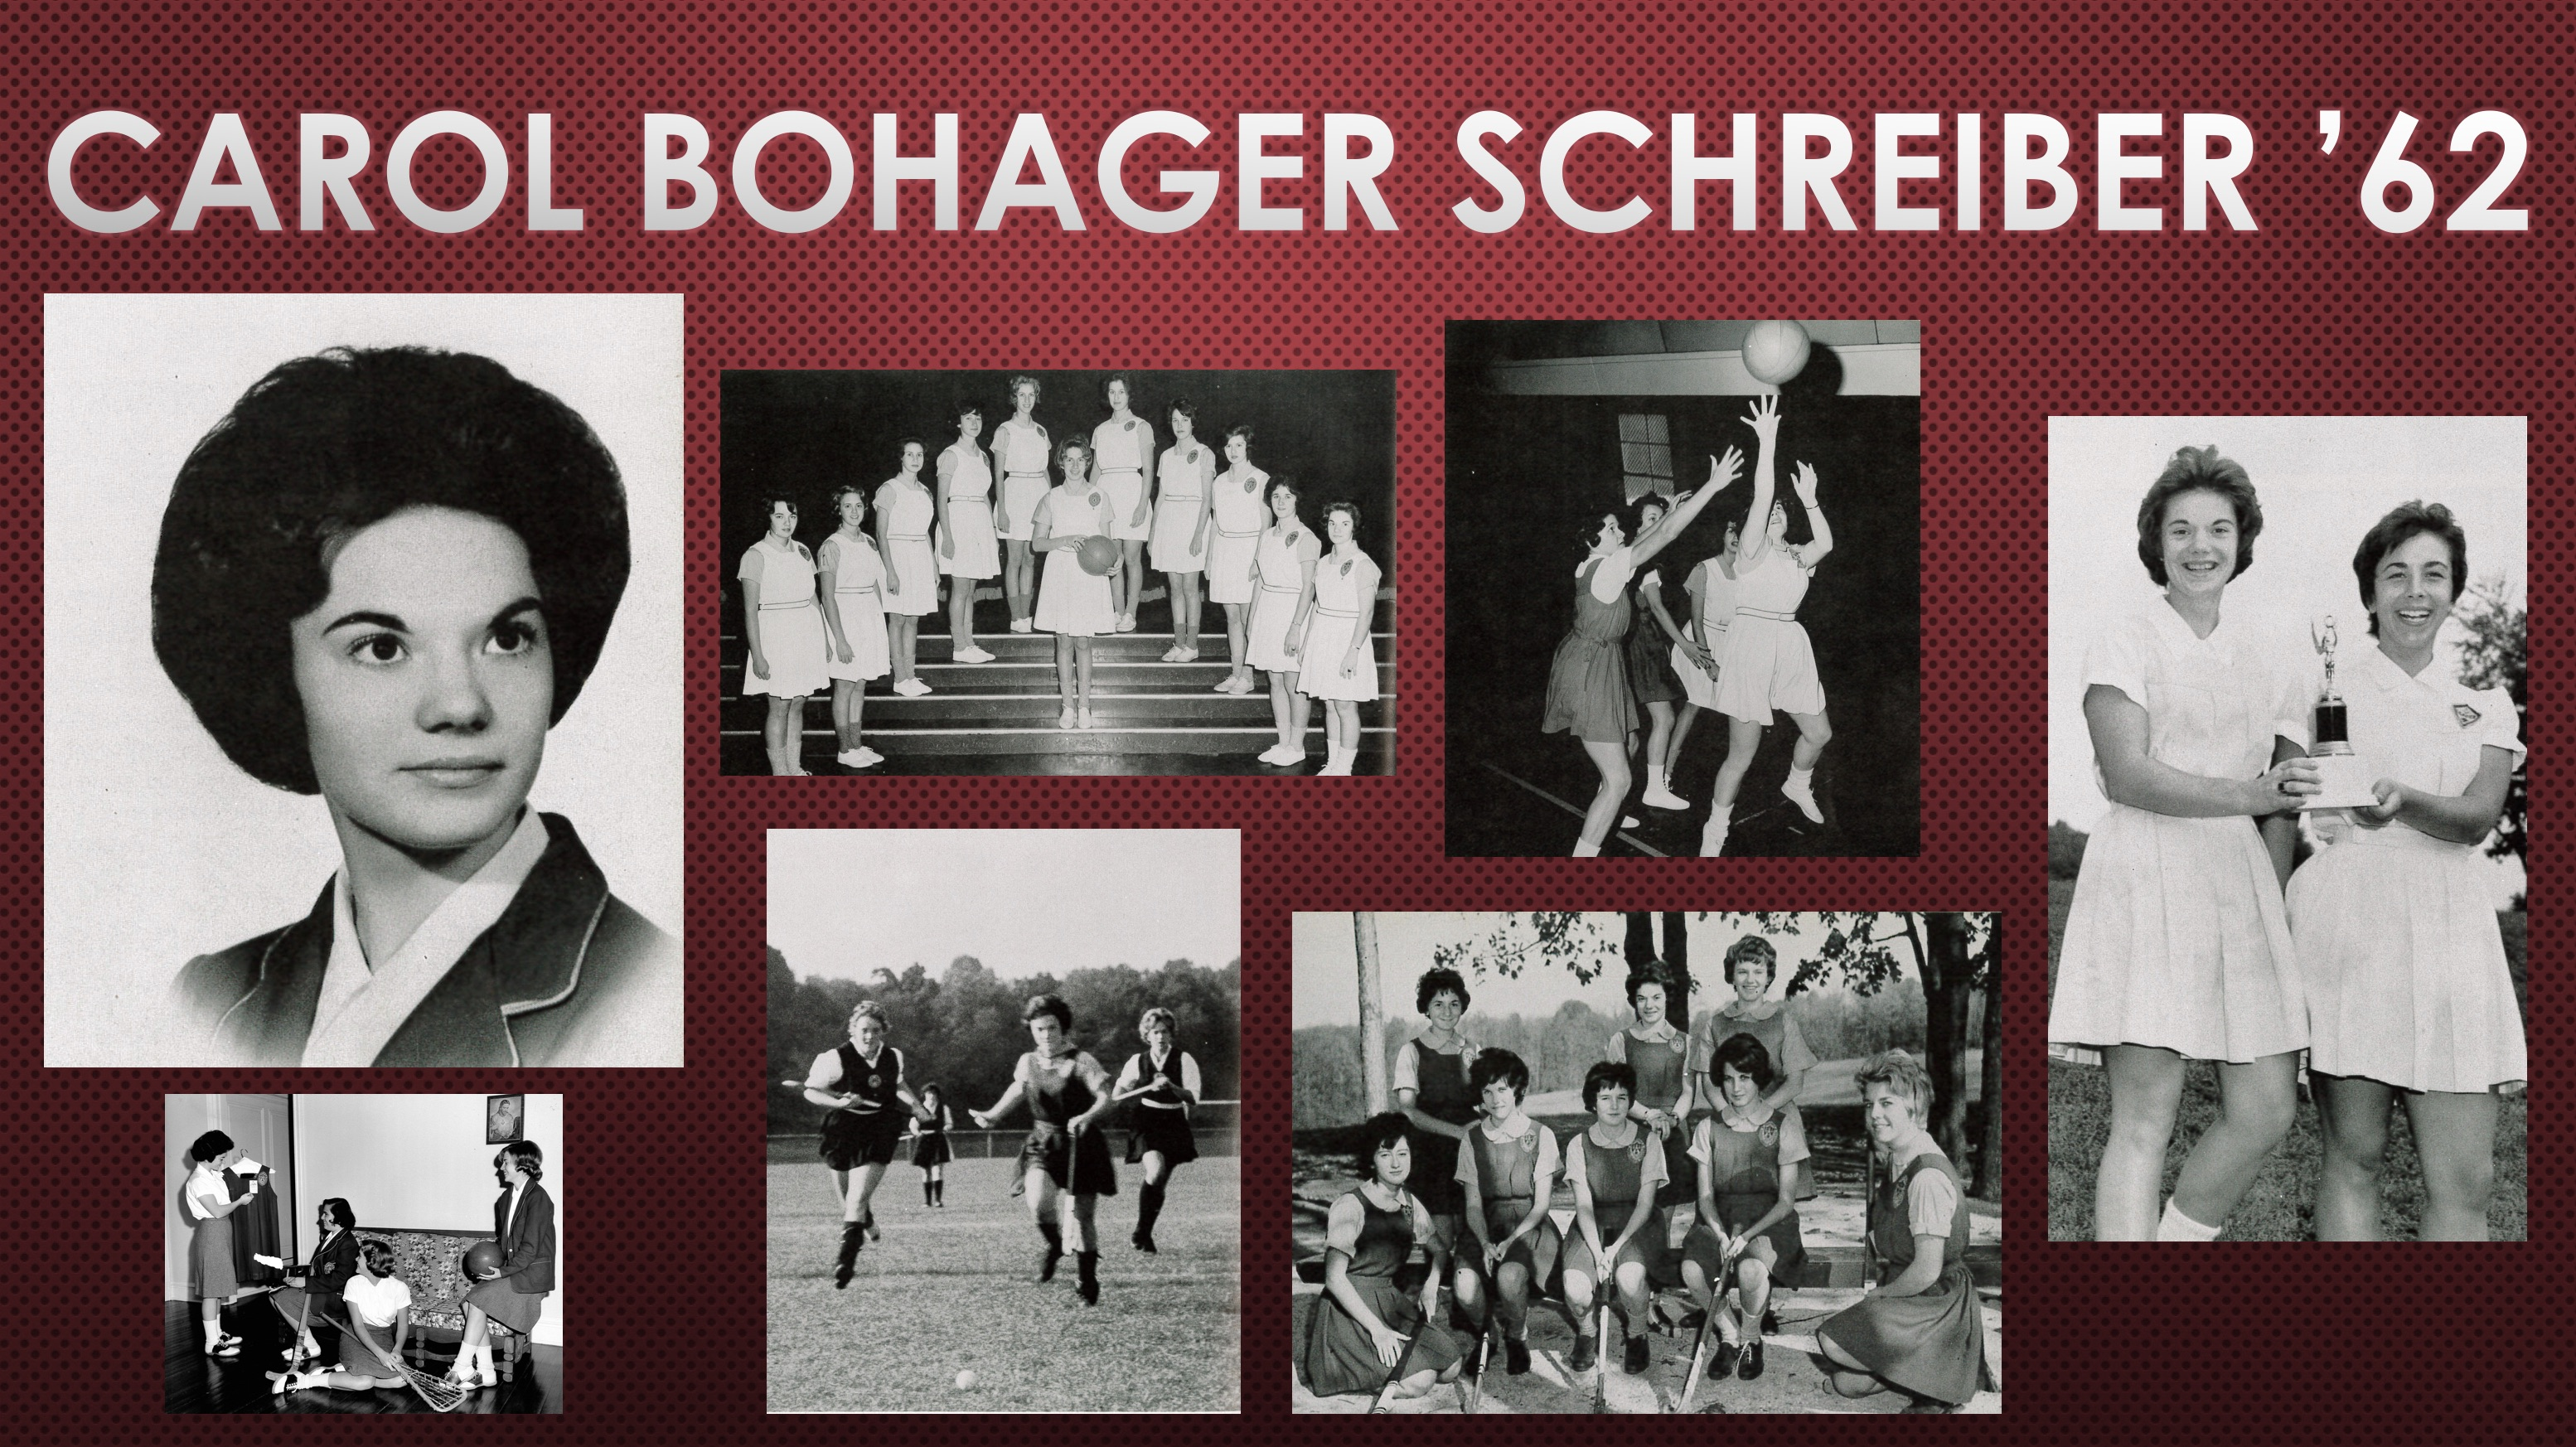 2018 Athletic Hall of Fame Inductee: Carol Bohager Schreiber '62